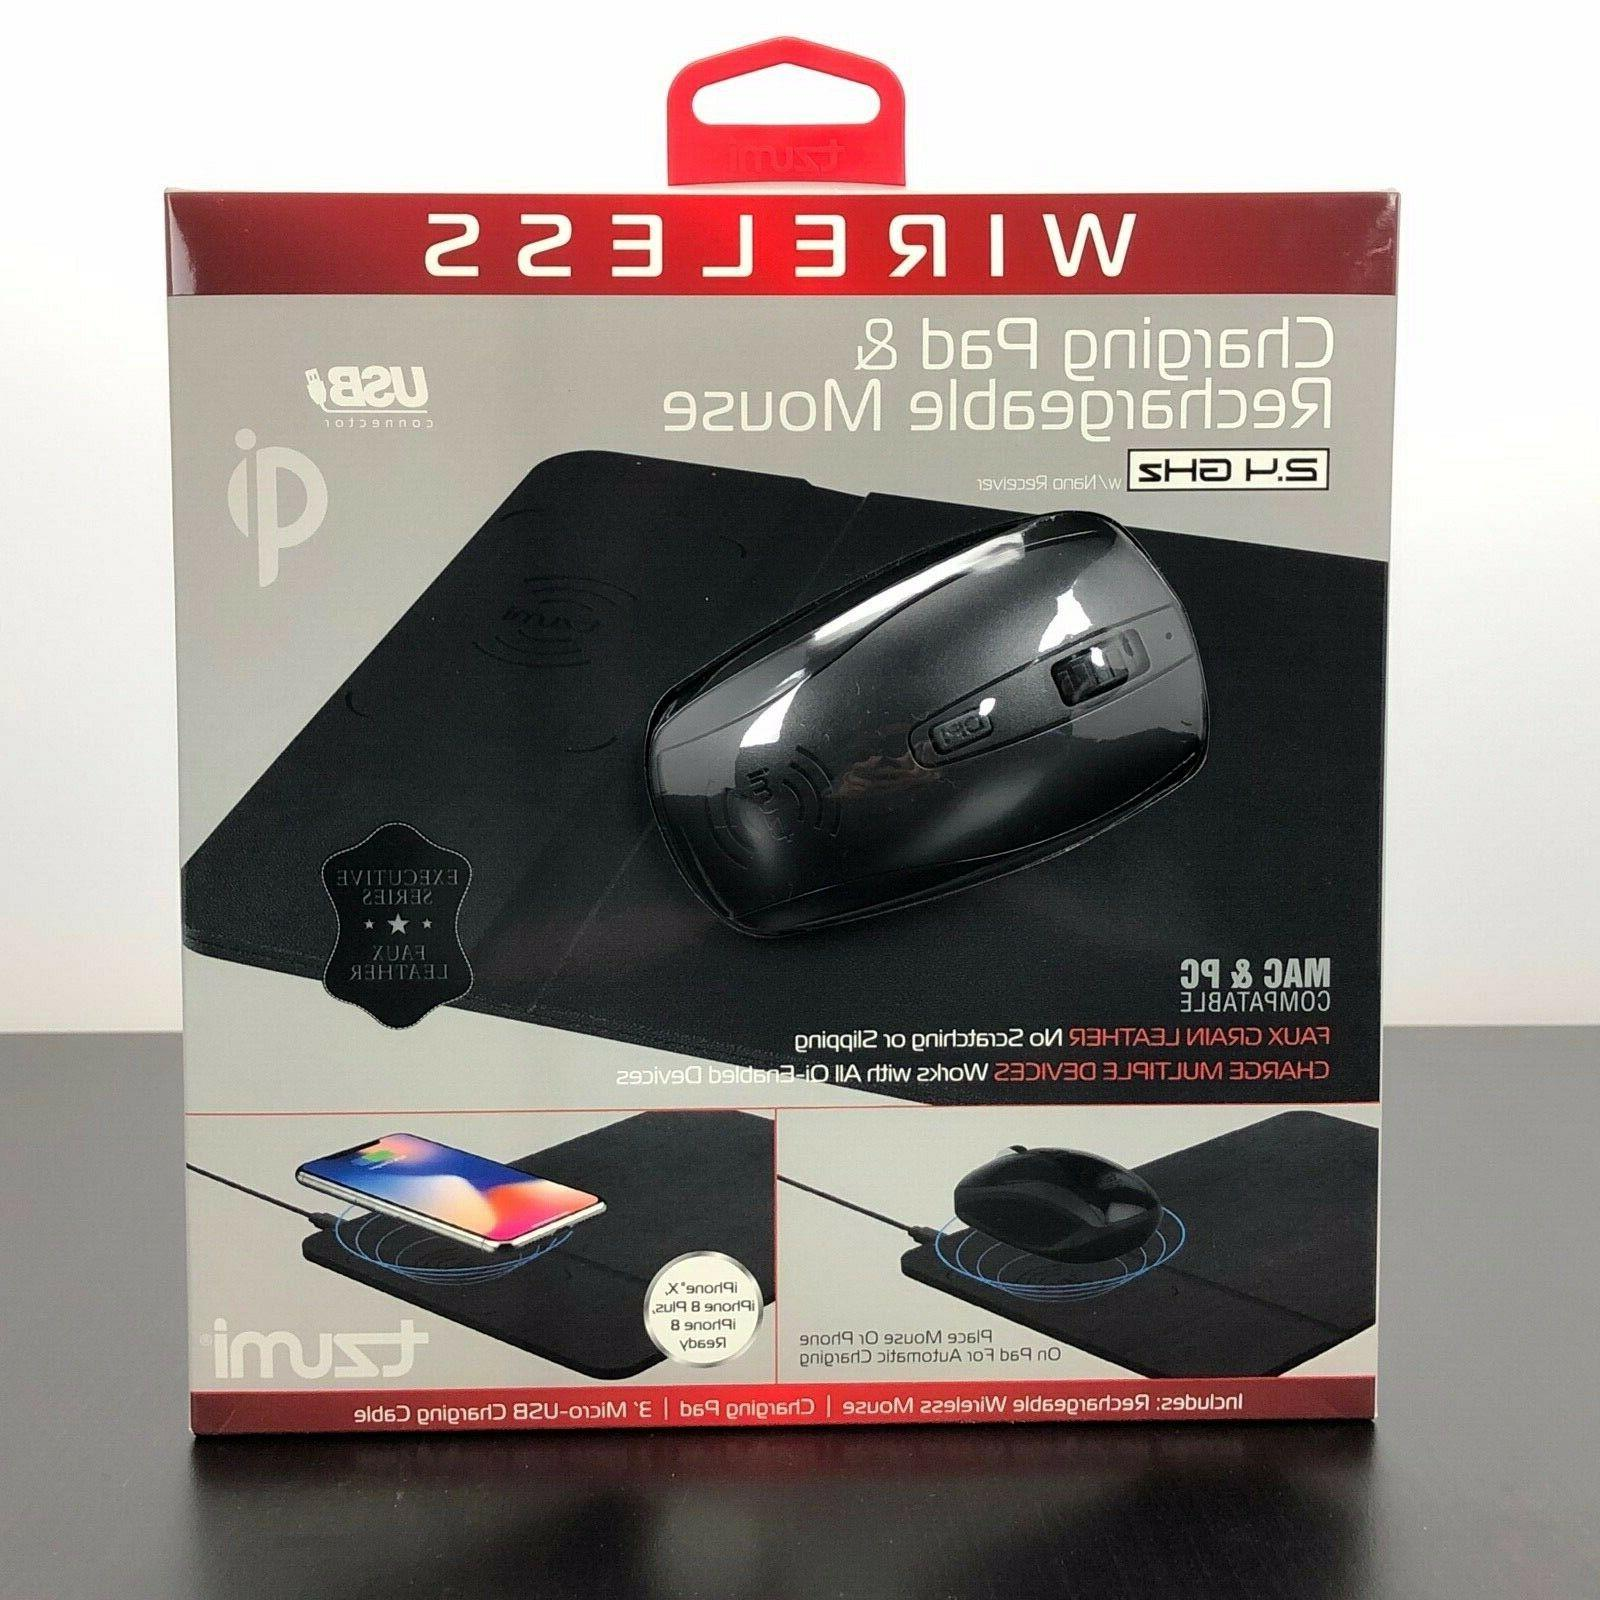 wireless phone charger and rechargeable wireless mouse